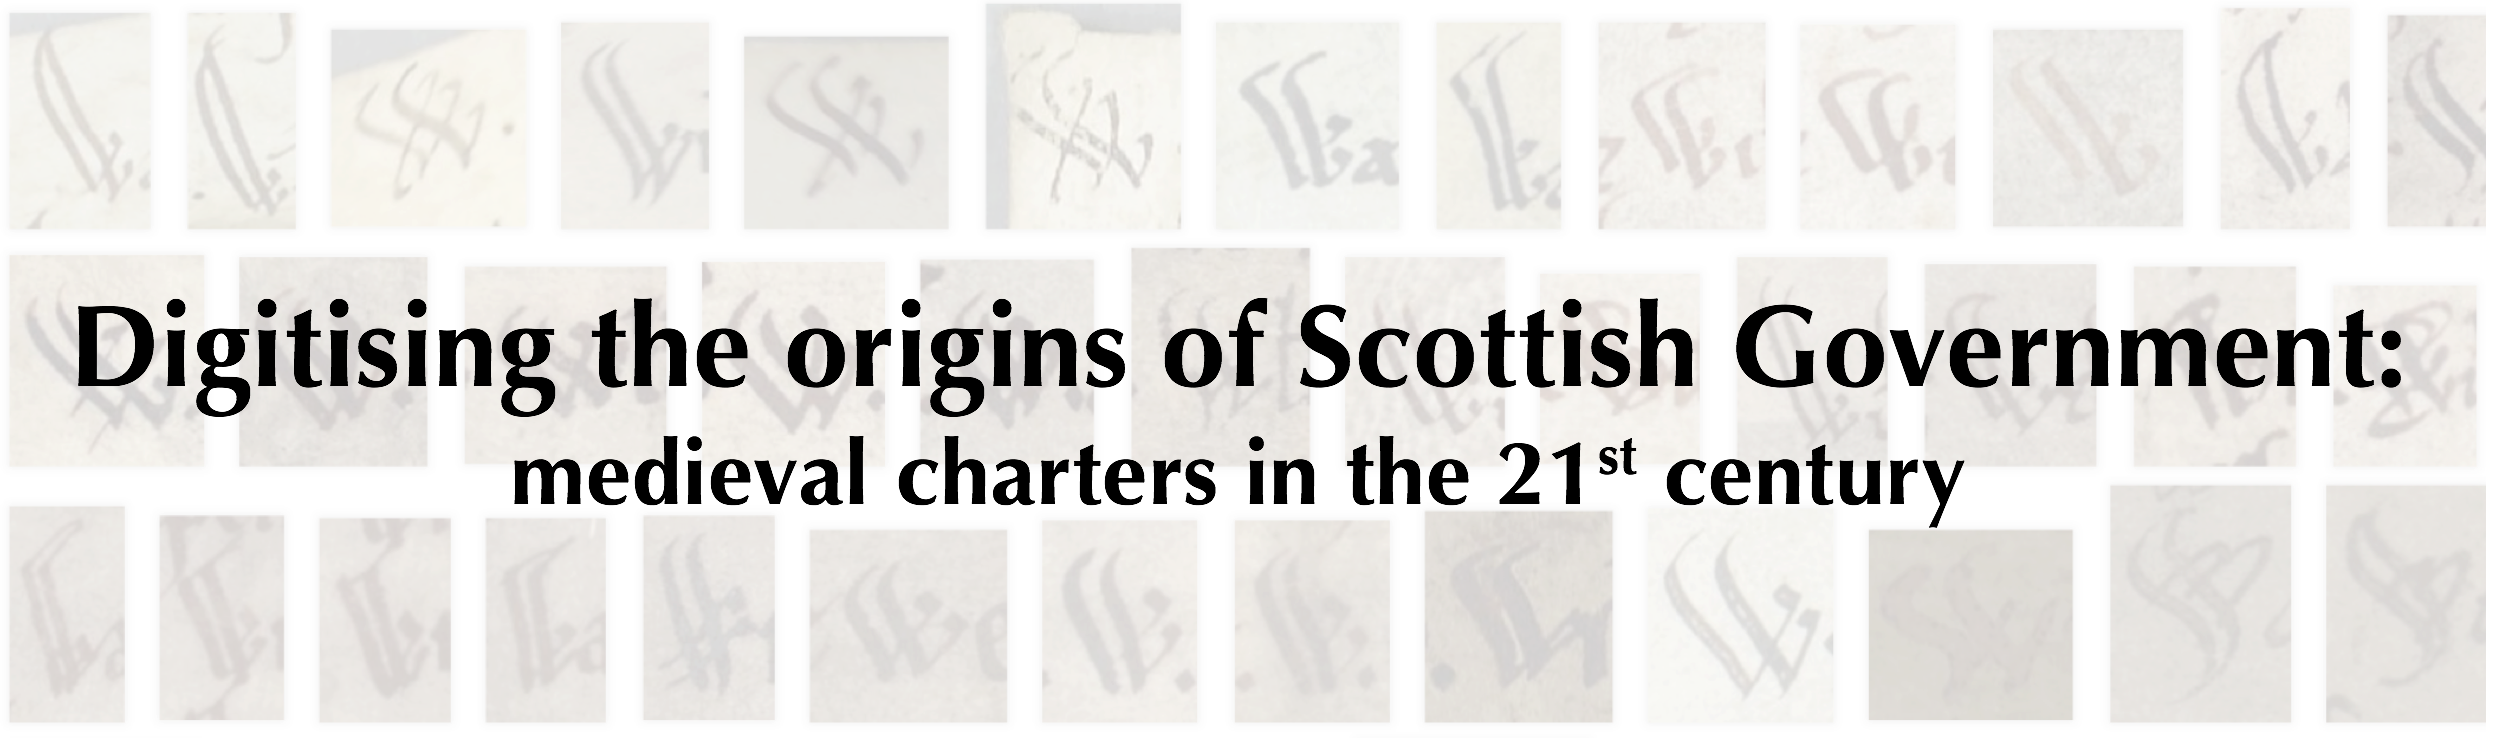 Digitising the origins of Scottish Government, public conference banner